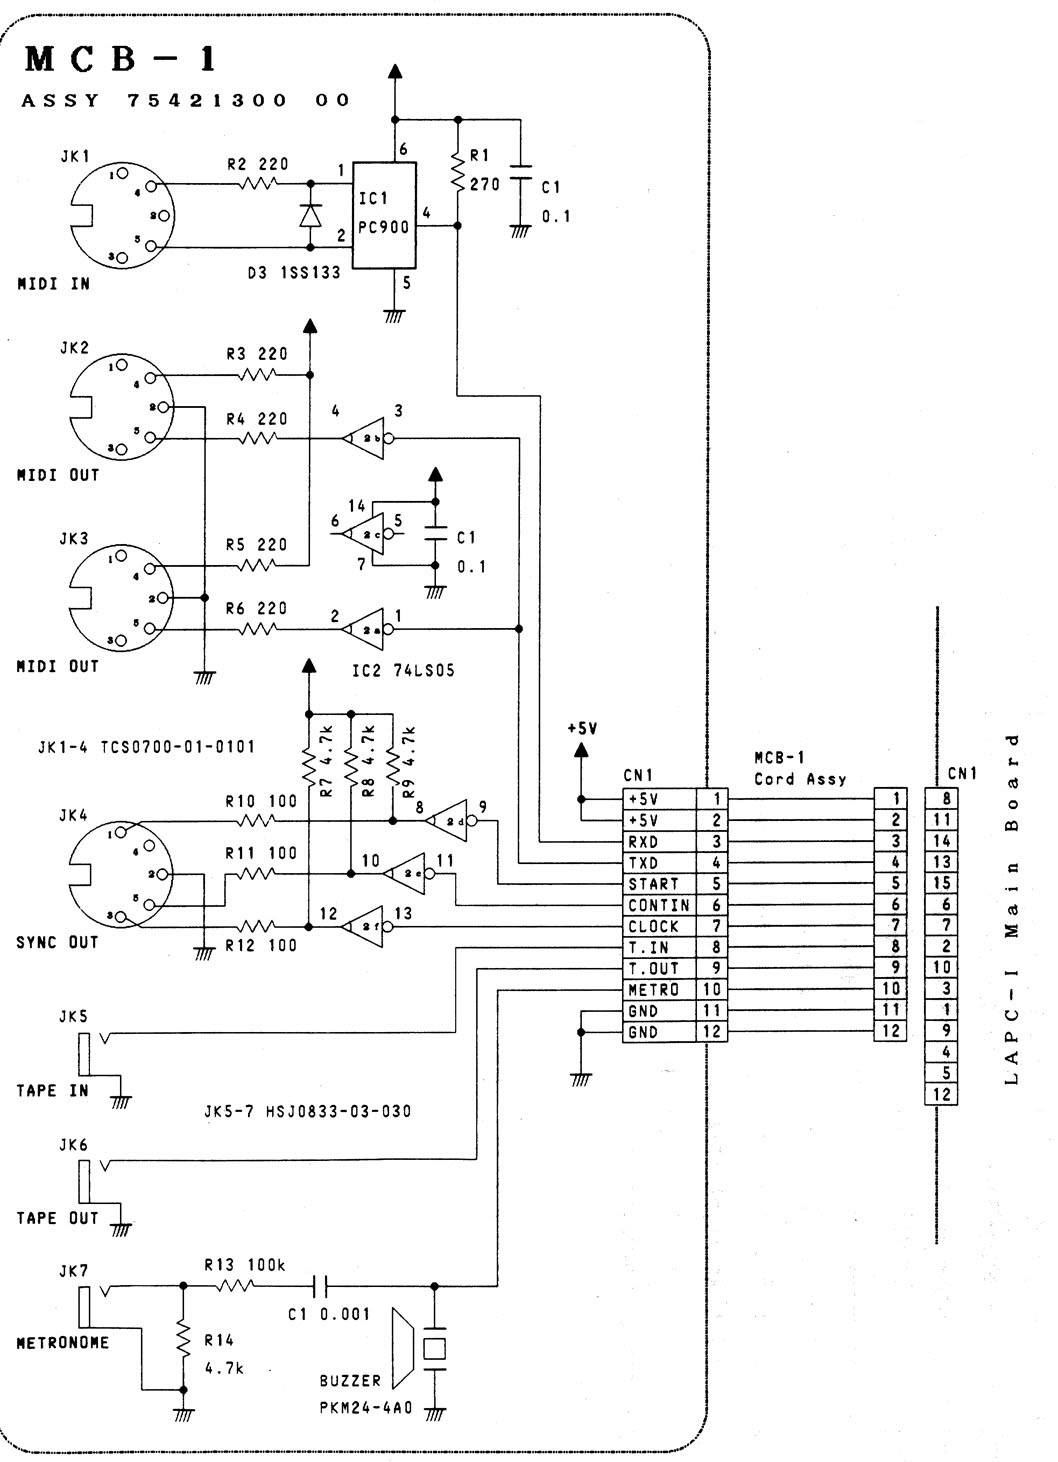 mcb board wiring diagram bosch dishwasher vogons  view topic home made midi interface for the lapc i